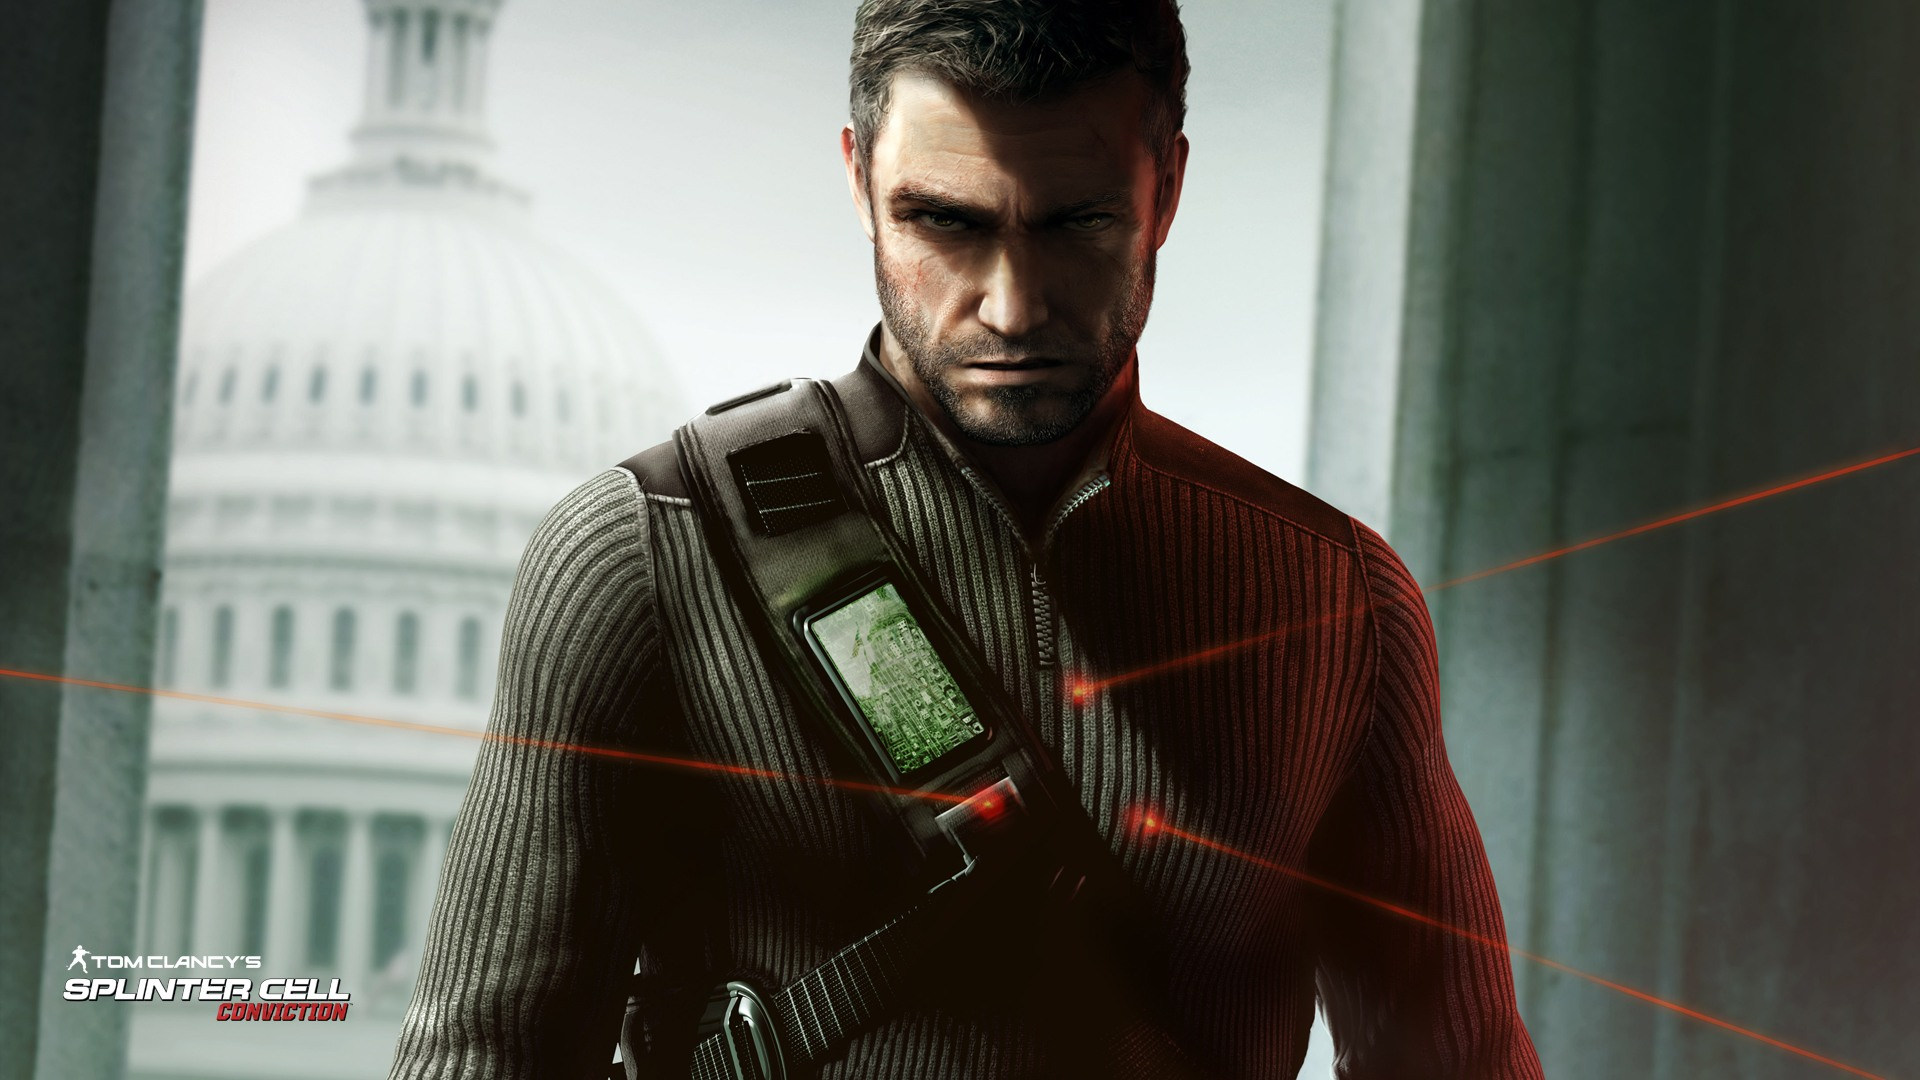 Free Download Splinter Cell Conviction Sam Fisher Wallpaper